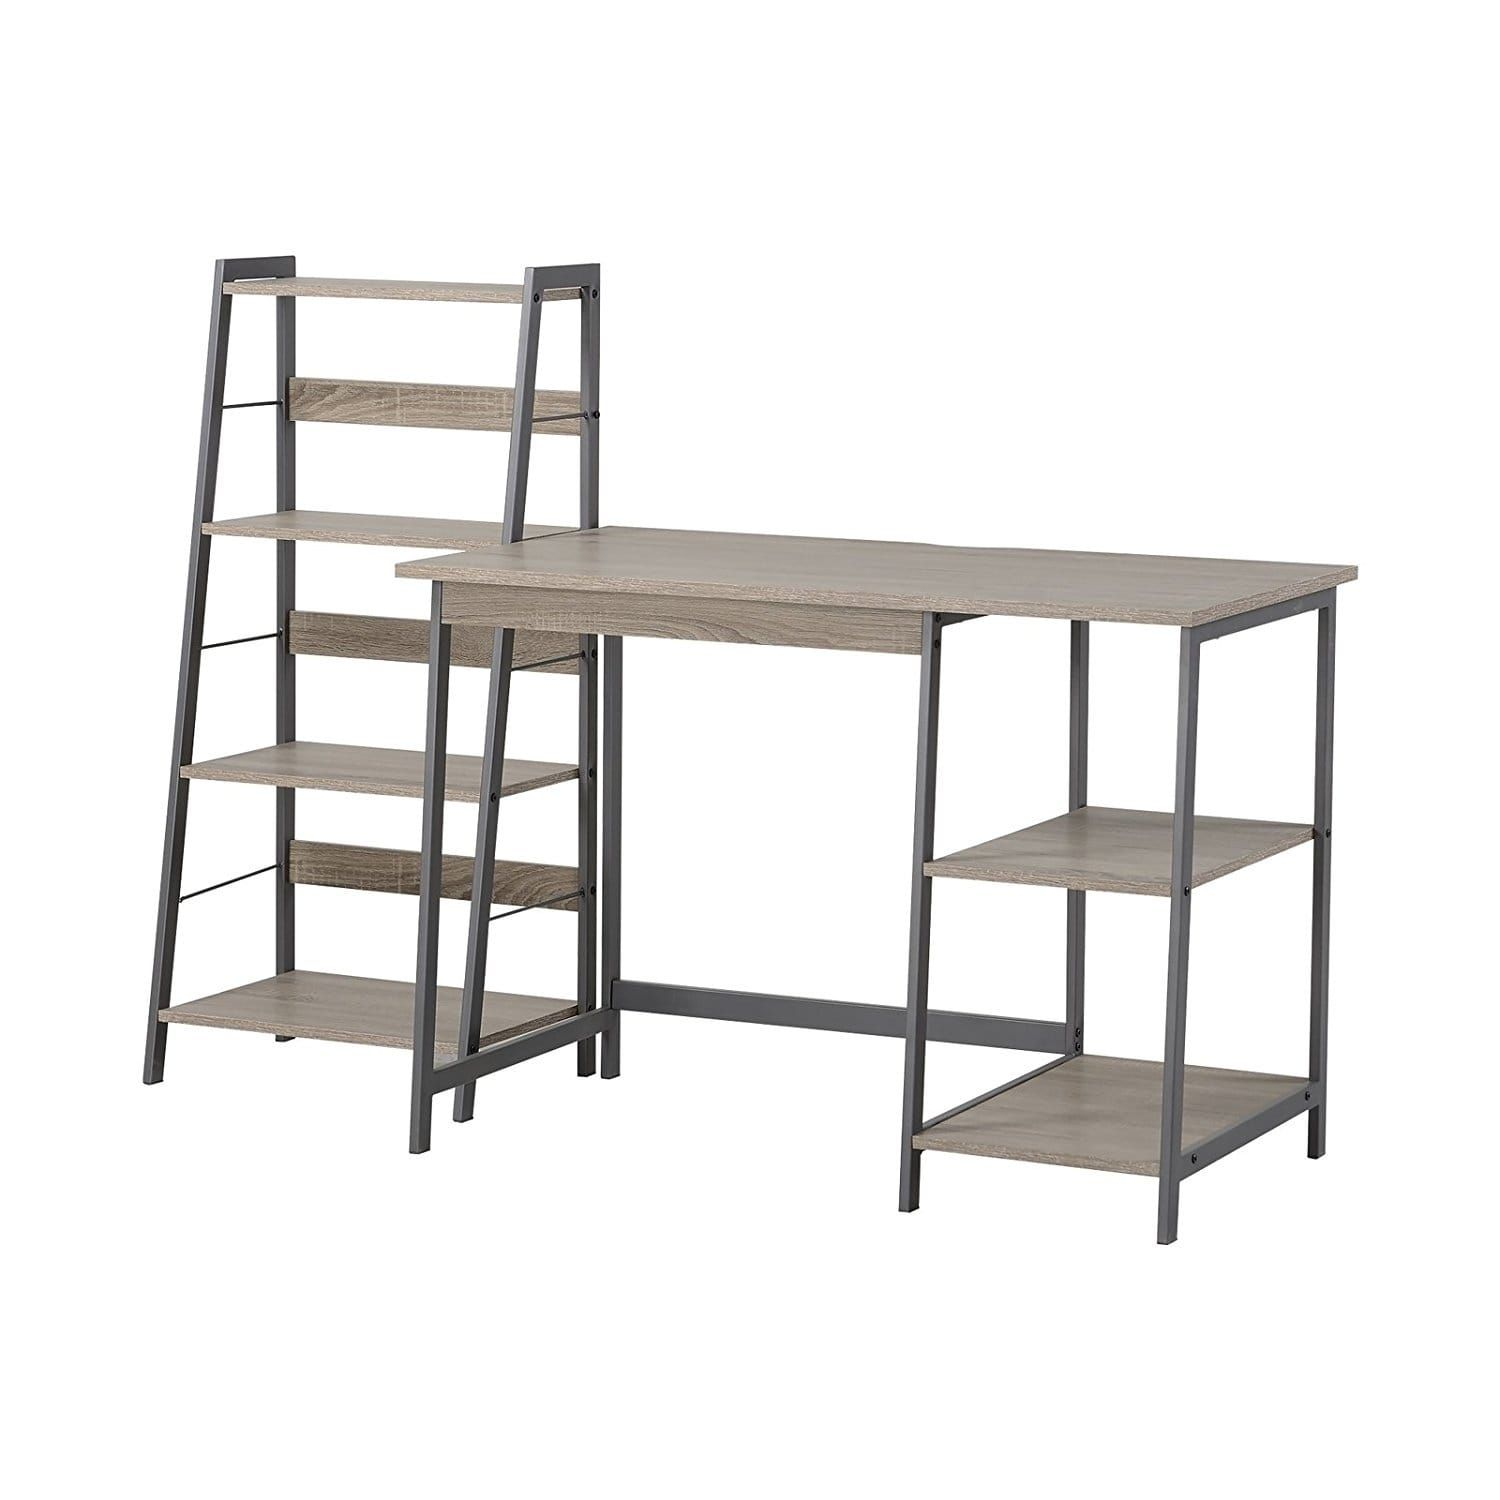 Homestar gemelli writing desk and shelves bookcase duo in